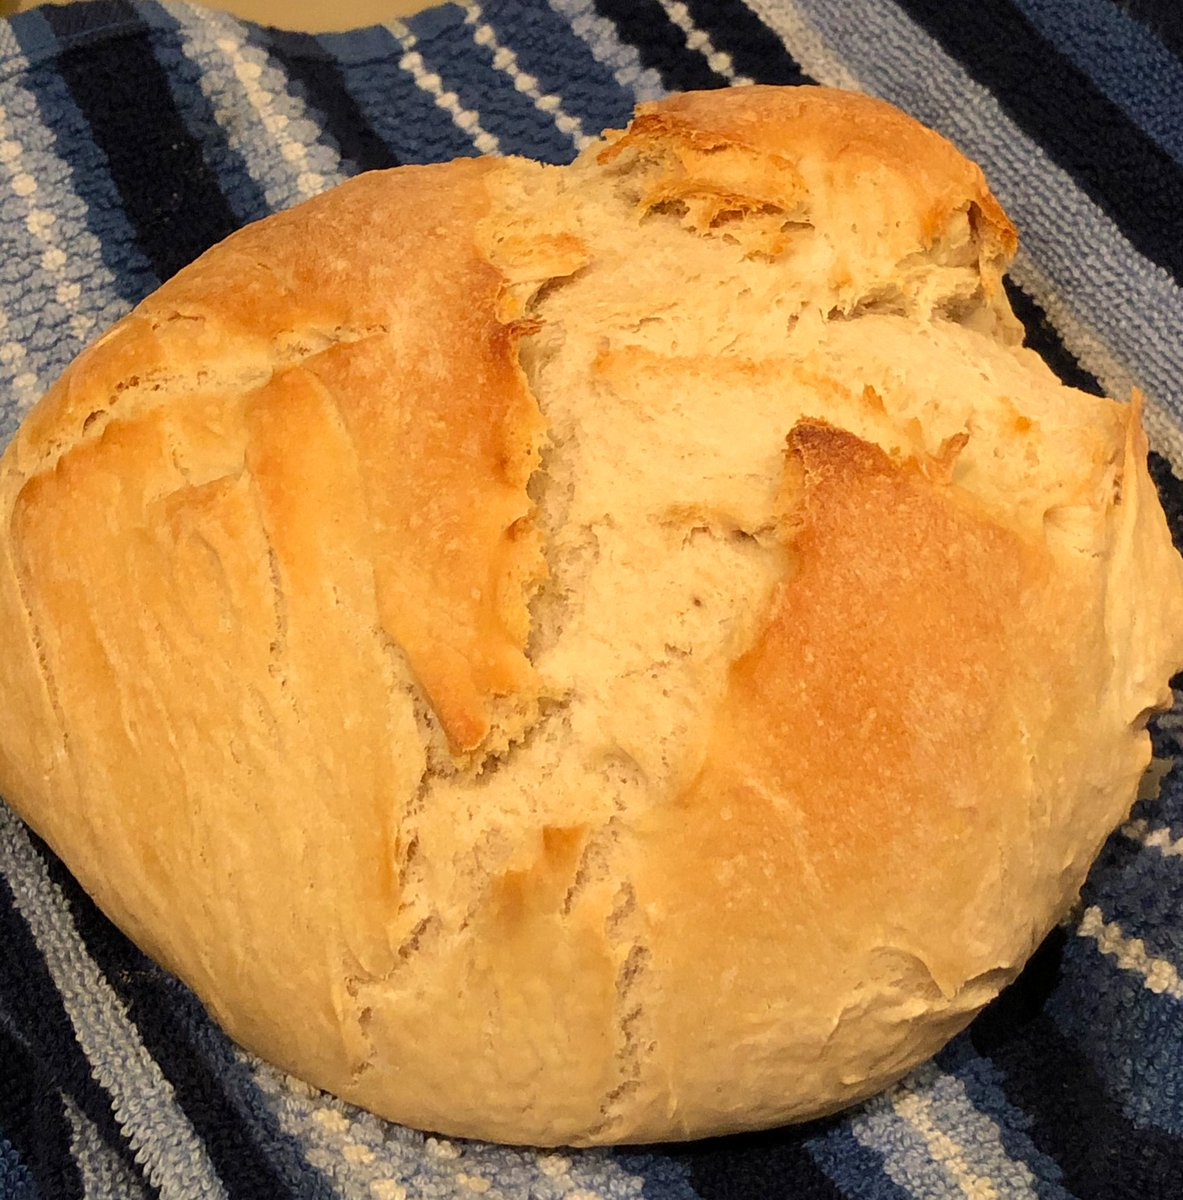 Made some #SelfCare bread on day 2 of my hybernation pic.twitter.com/37HPTJWIe0